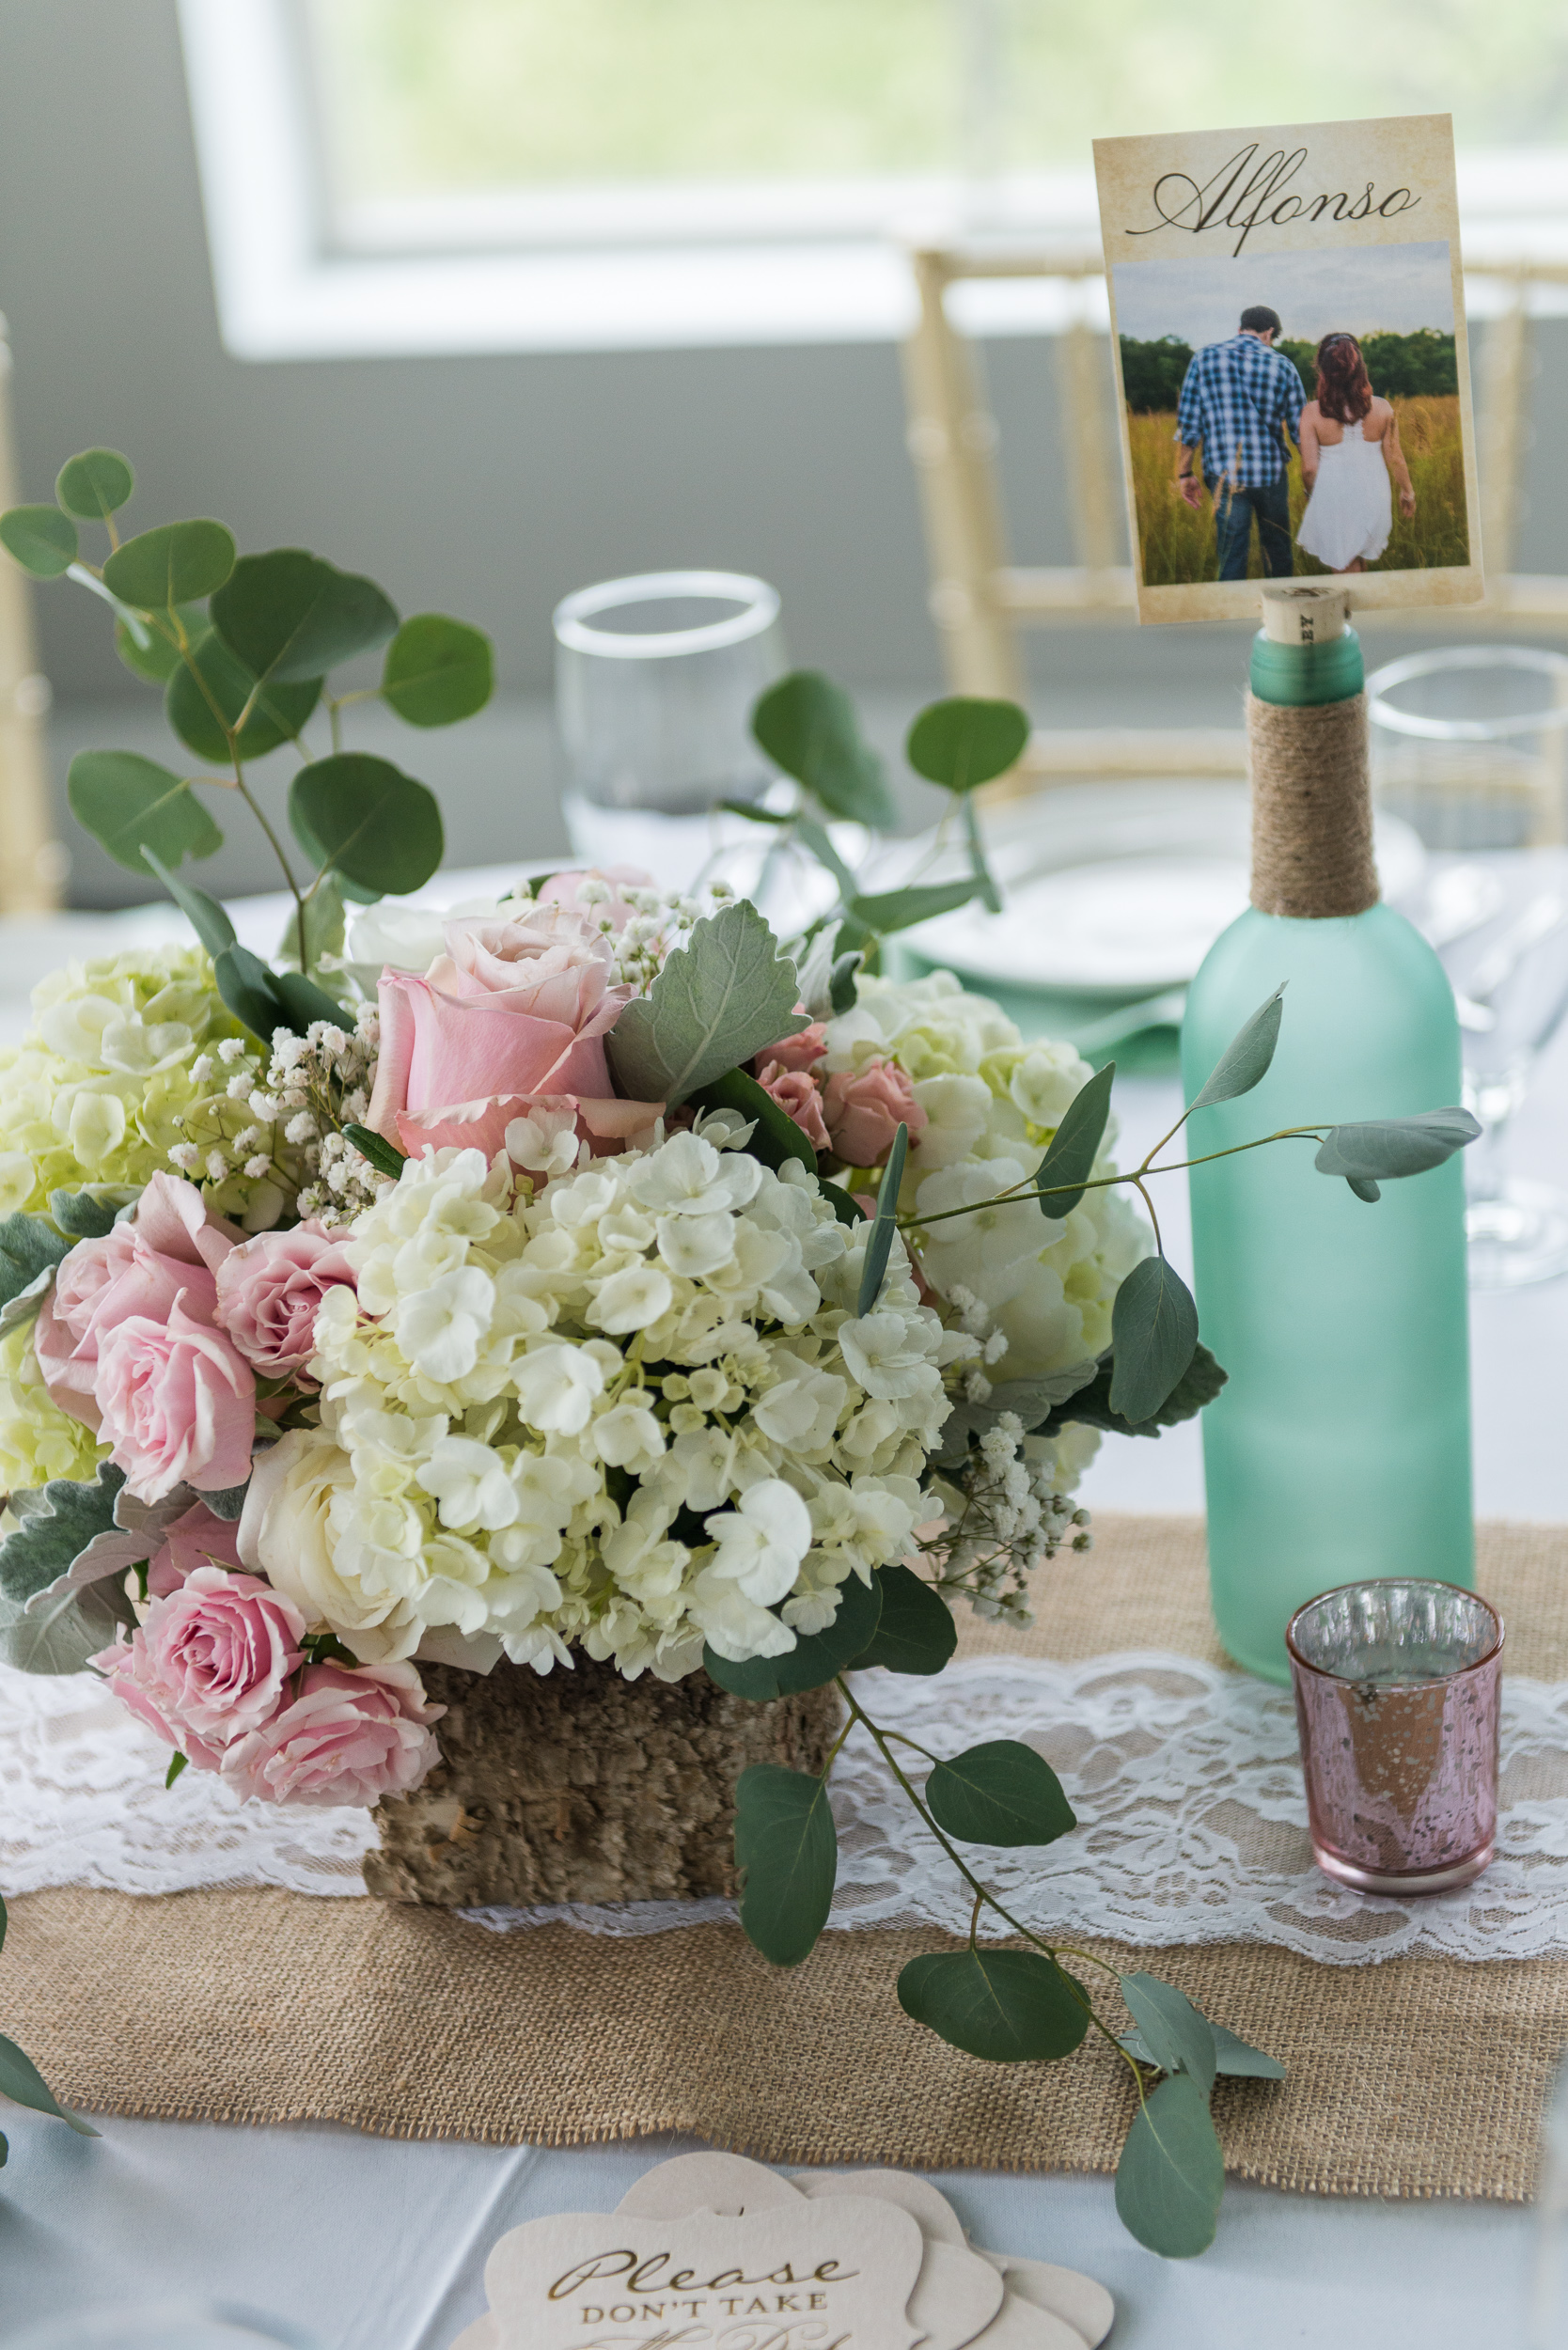 A table setting with a rustic pastel flower arrangement and wine bottle table numbers at a reception at Blue Valley Vineyard and Winery in Delaplane, Virginia